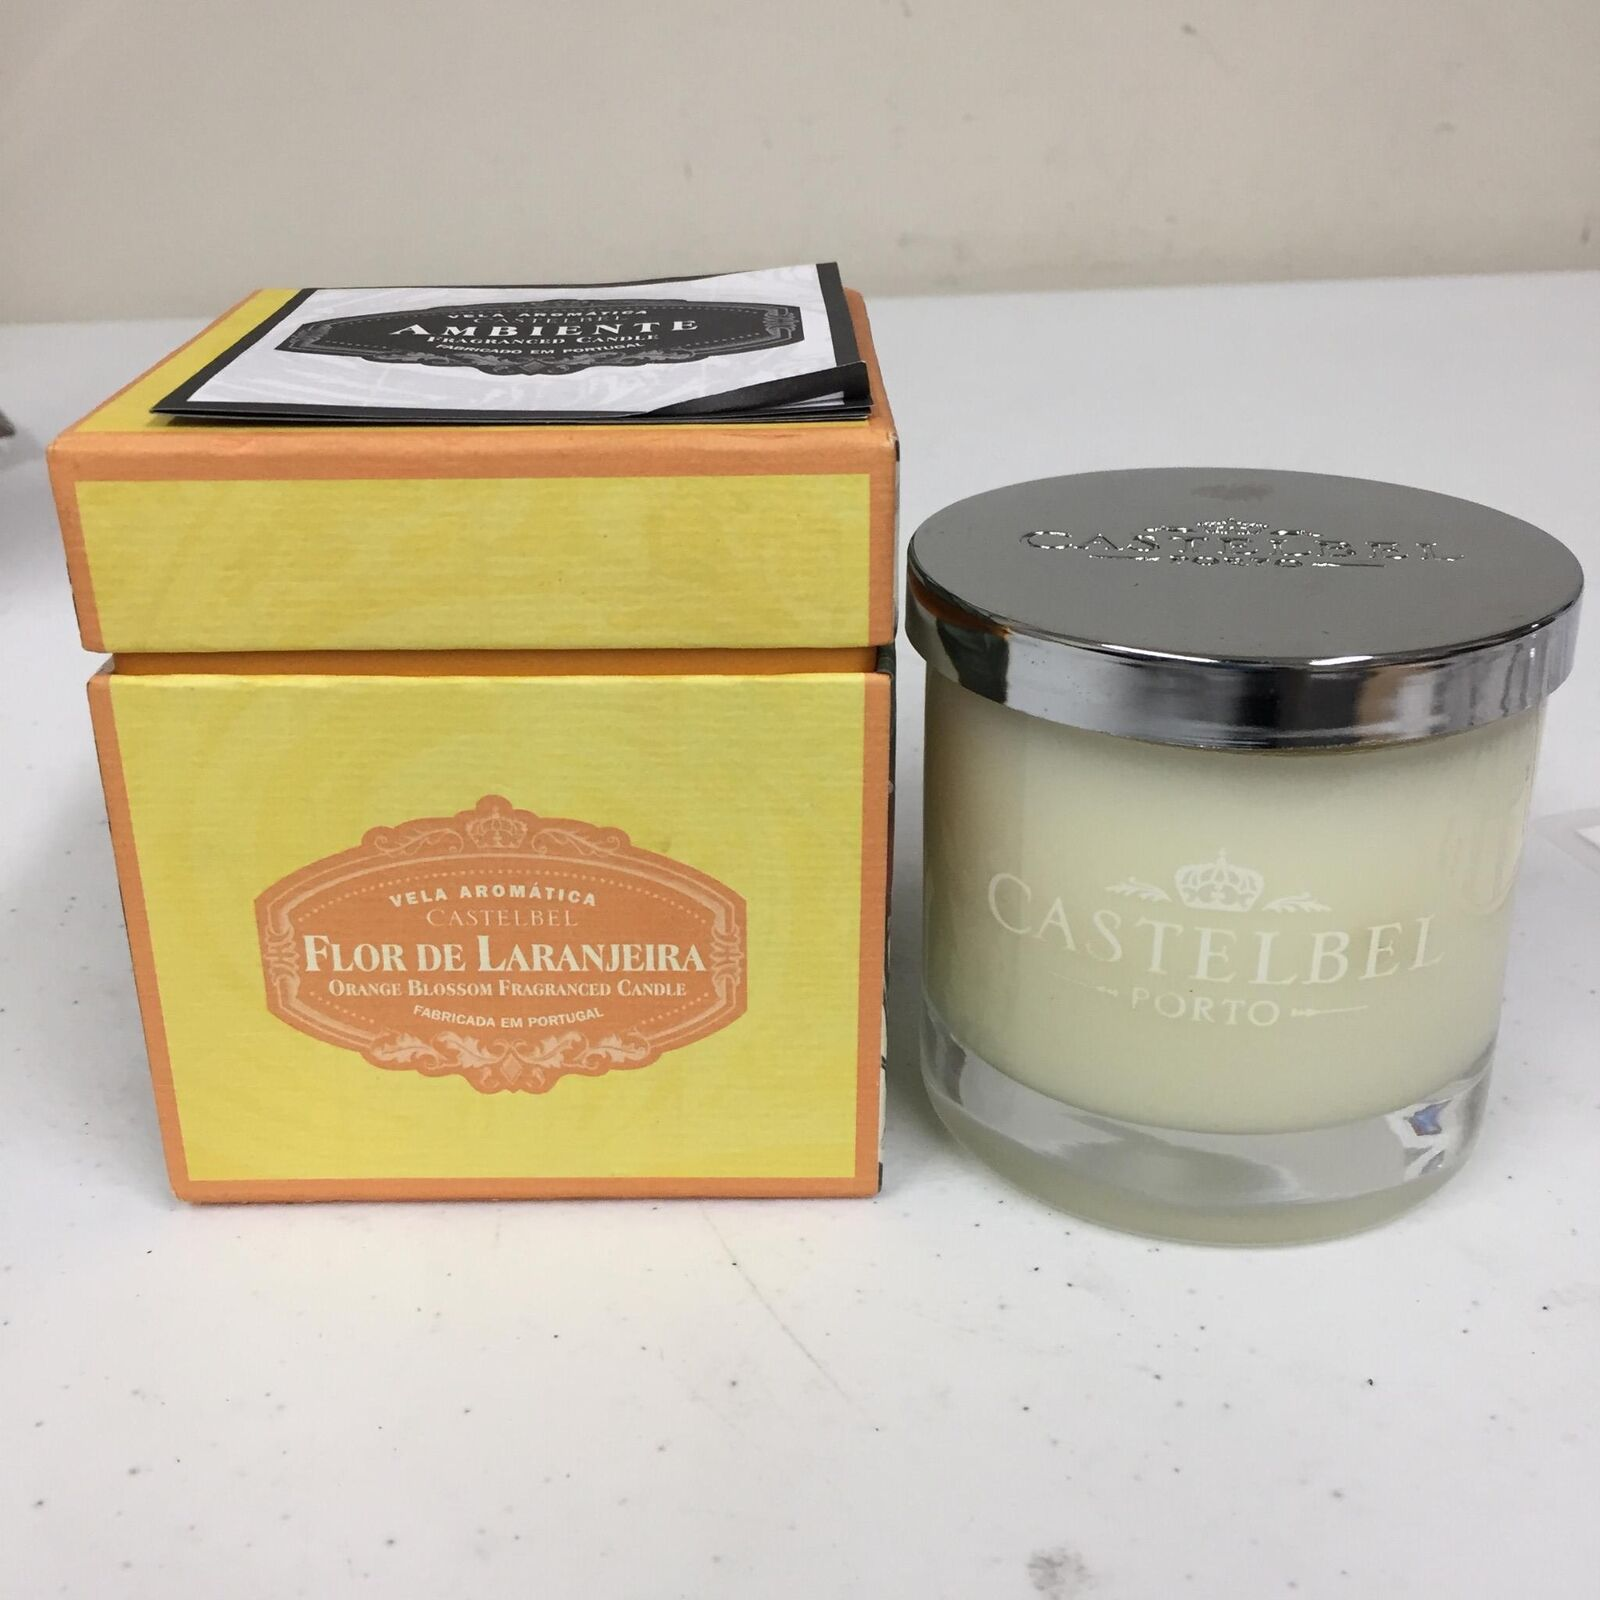 Castelbel Porto orange Blossom Flor De Laranjeira 8 OZ Ambient Fragranced Candle